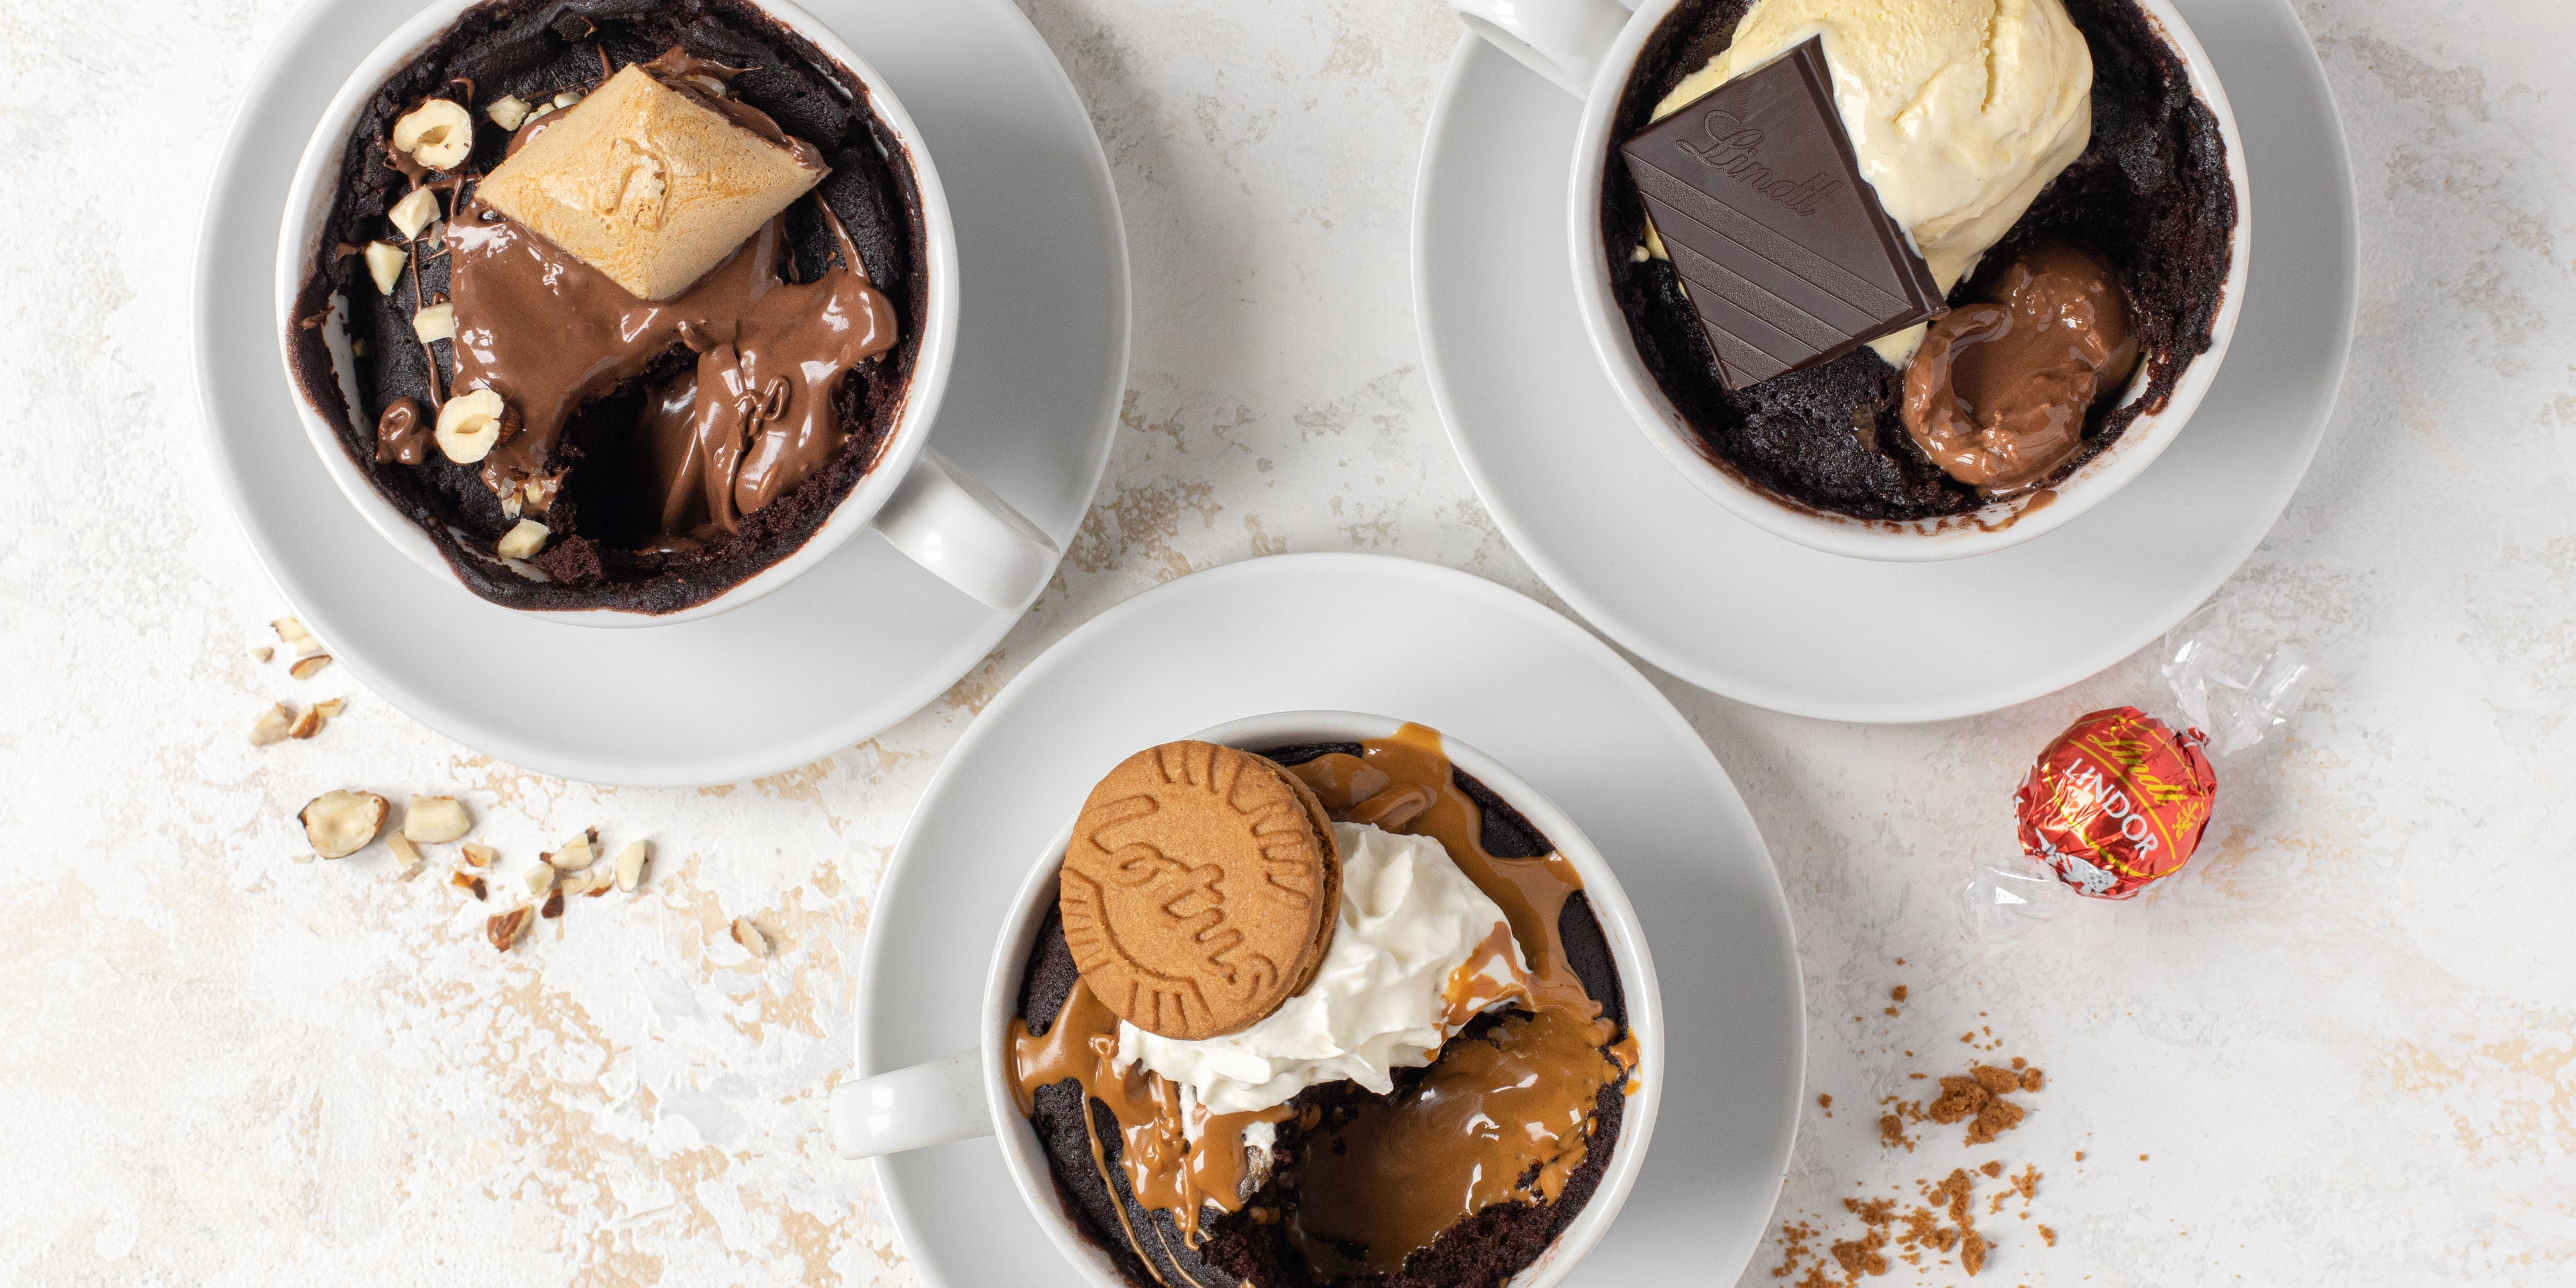 Top view of Chocolate Mug Cakes customised with Nutella, Lindt and Lotus Biscoff, with a Lindt ball and biscuit crumbs